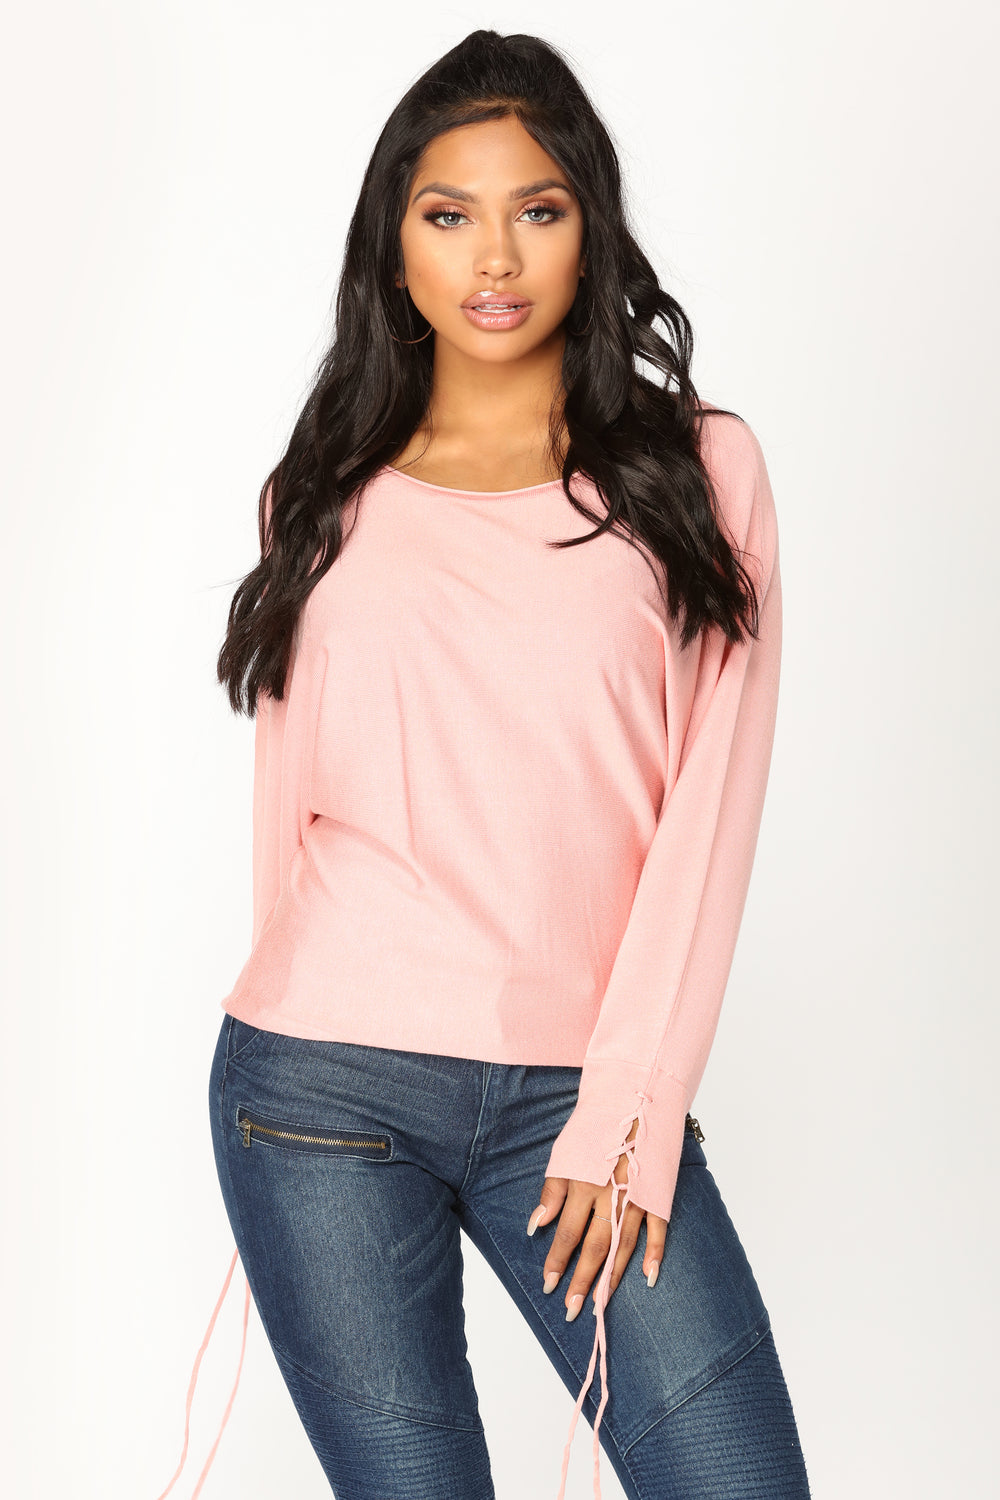 Over My Head Sweater - Coral